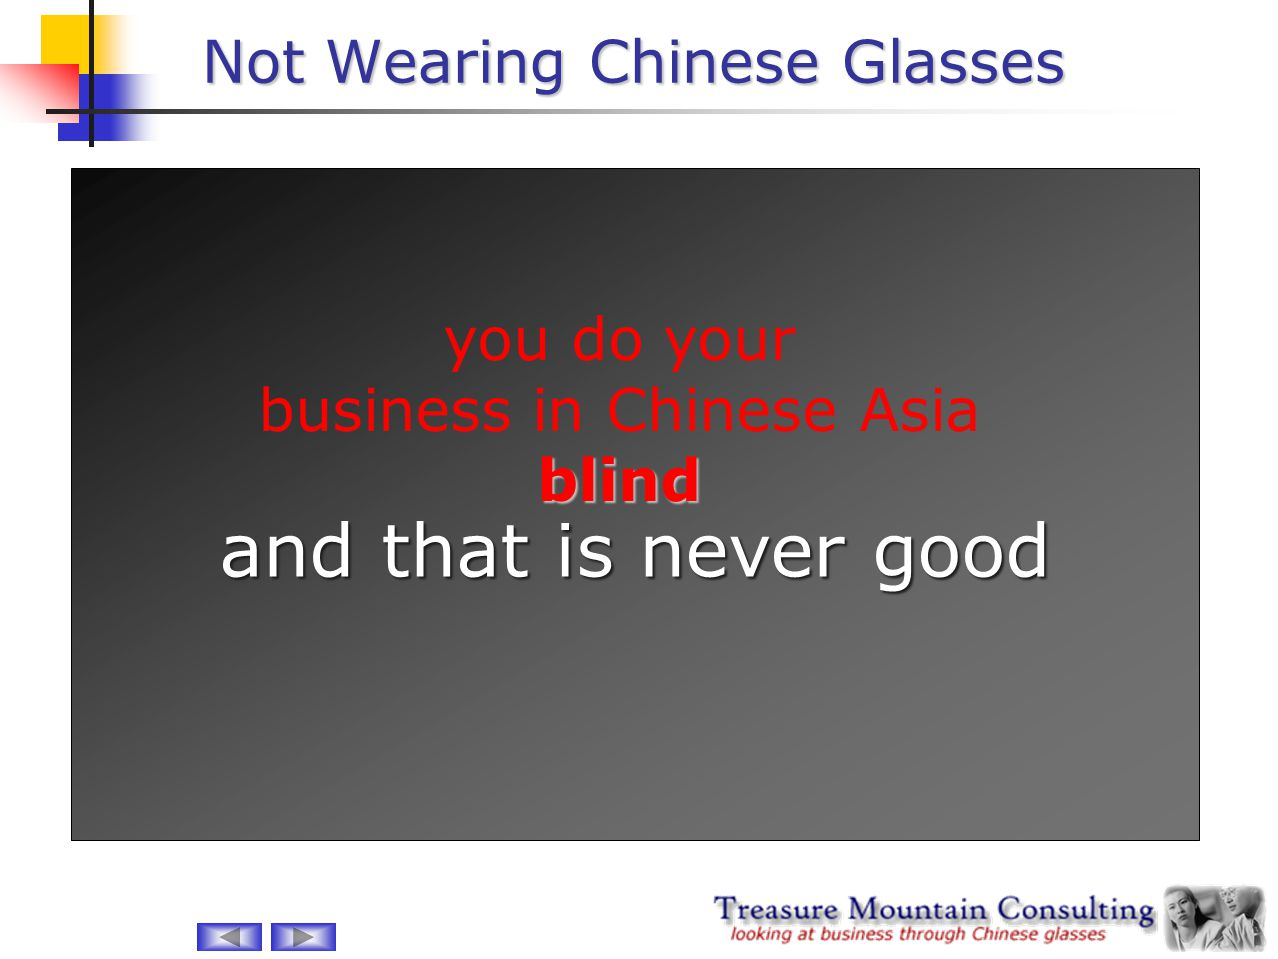 Not Wearing Chinese Glasses and that is never good you do your blind business in Chinese Asia blind